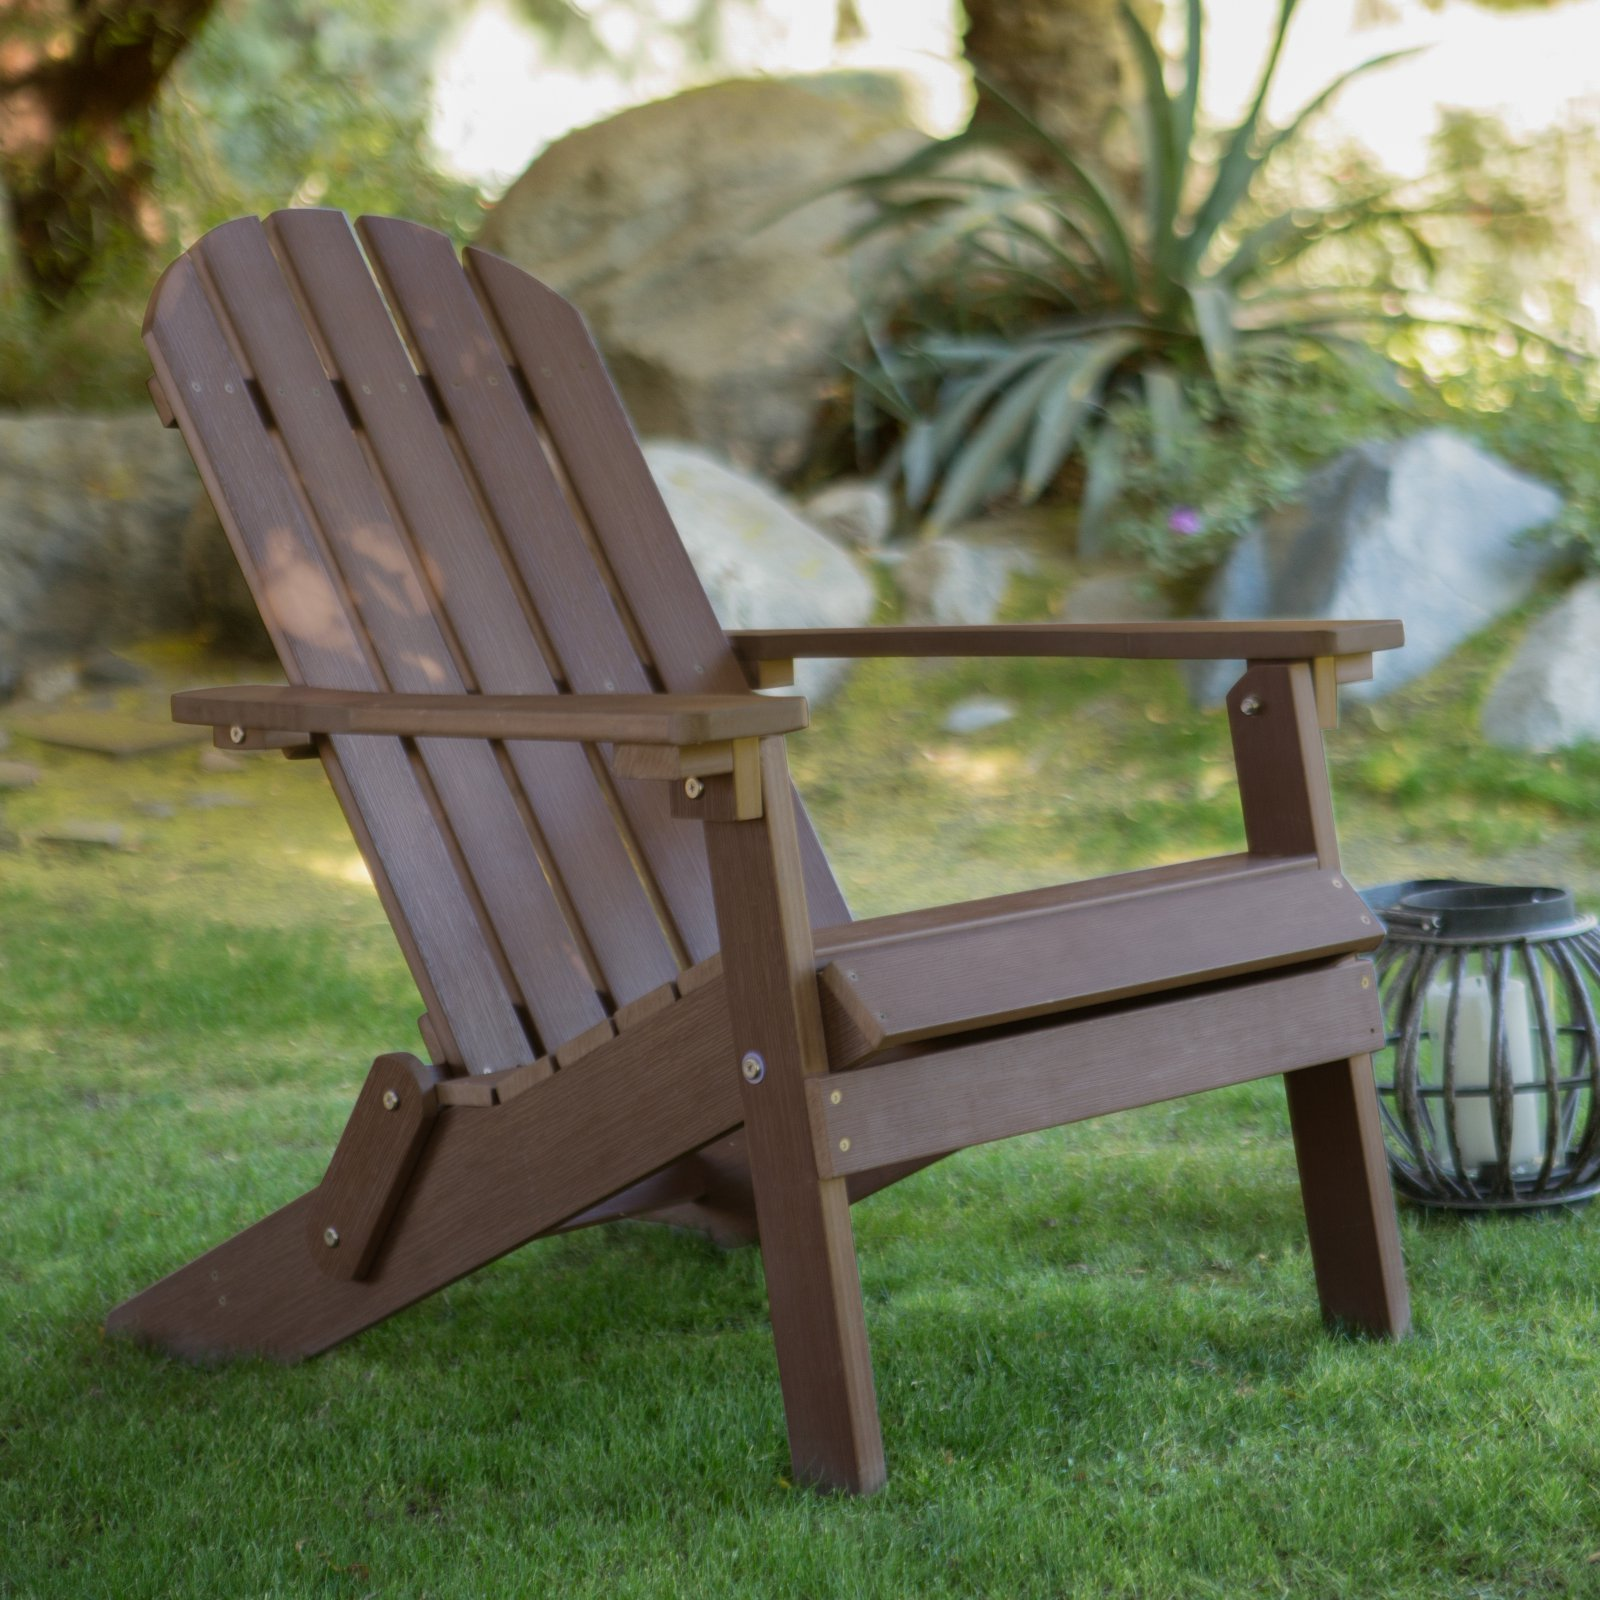 Belham Living All Weather Resin Adirondack Chair Chocolate Brown by Merry Products